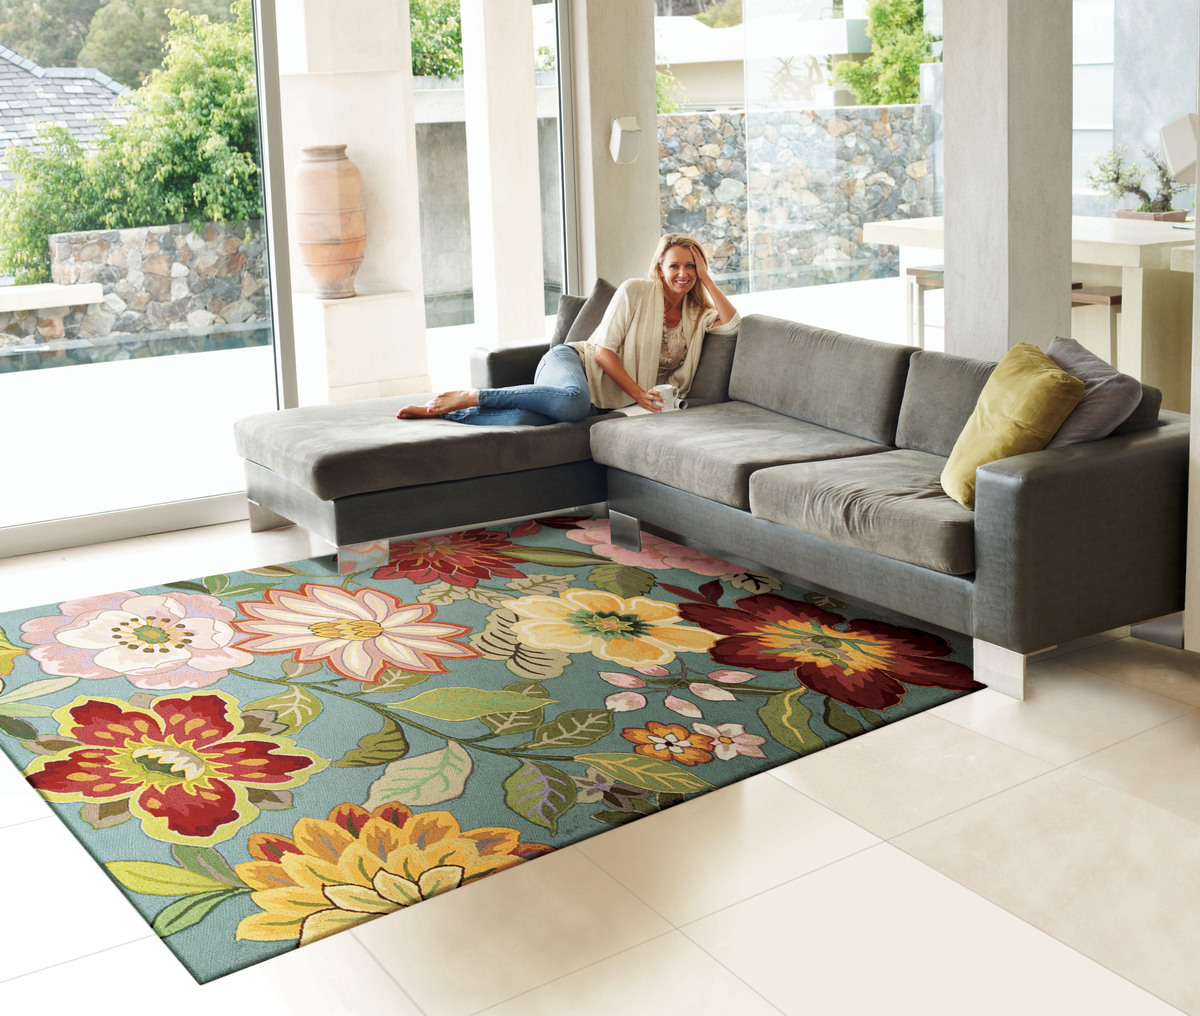 pretty flower pattern of rug by nourison rugs on white tile floor plus gray sofa for living room decor ideas